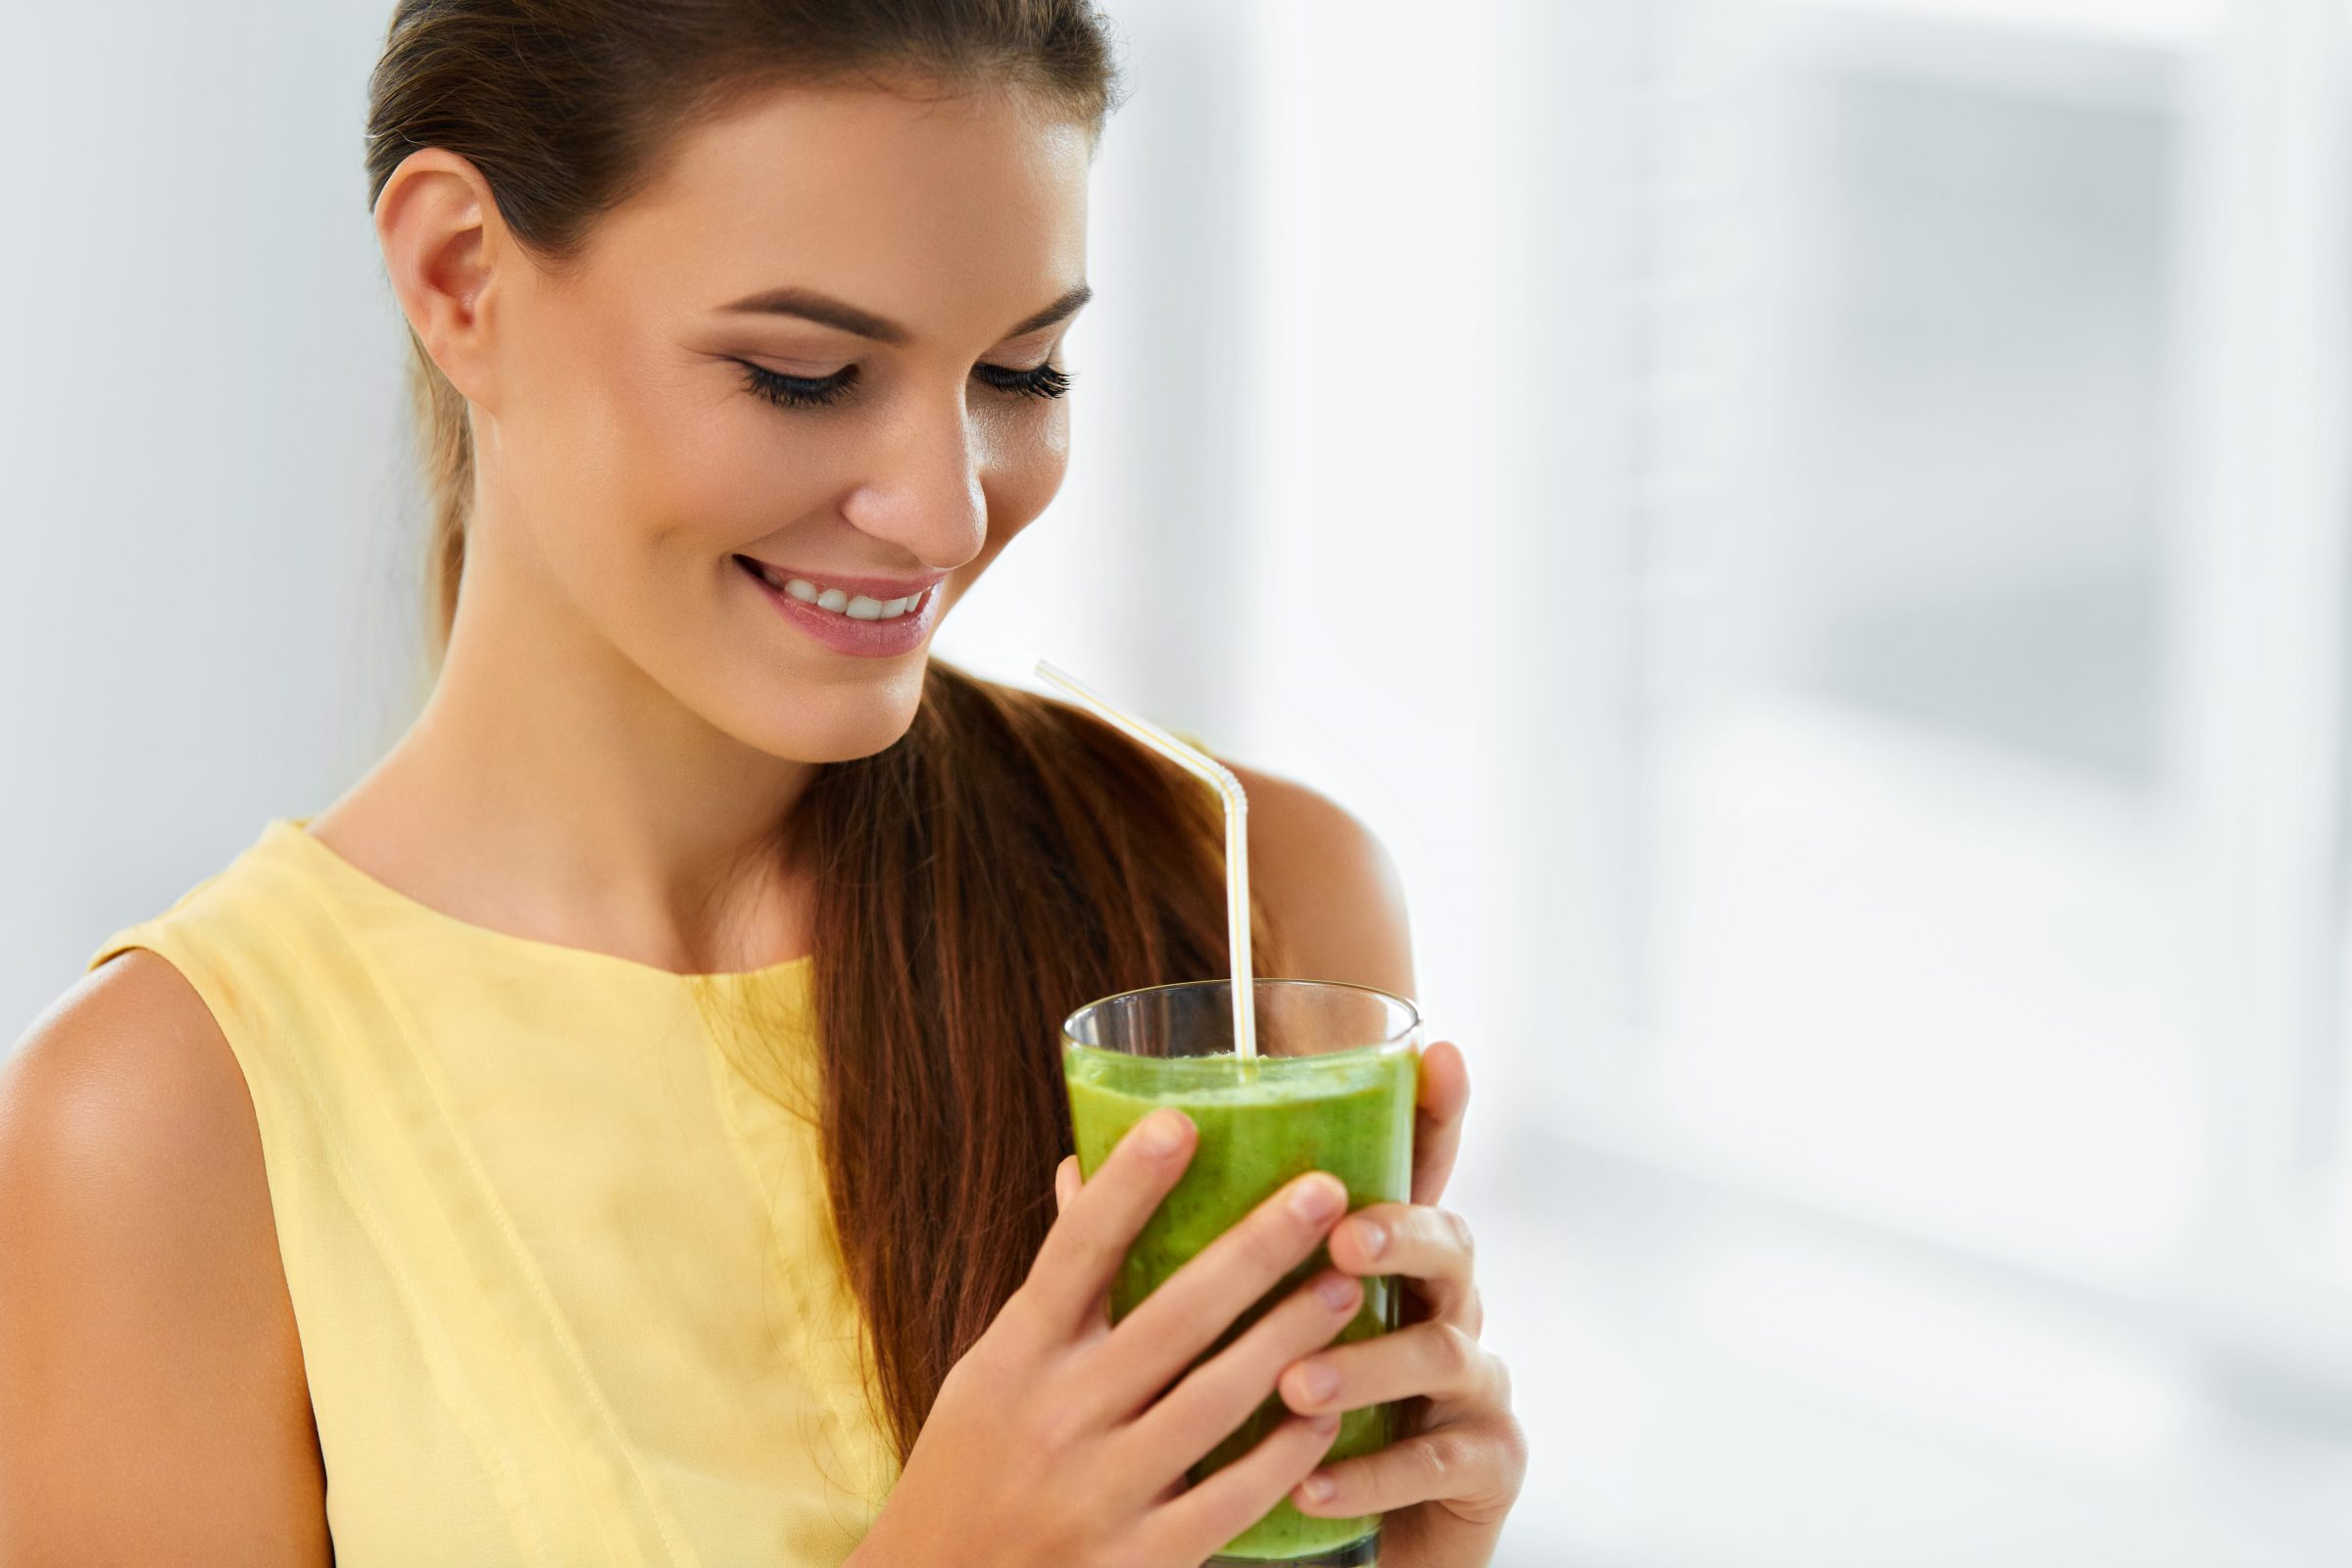 Dr Low Chai Ling helps us understand the difference between a detox and a cleanse